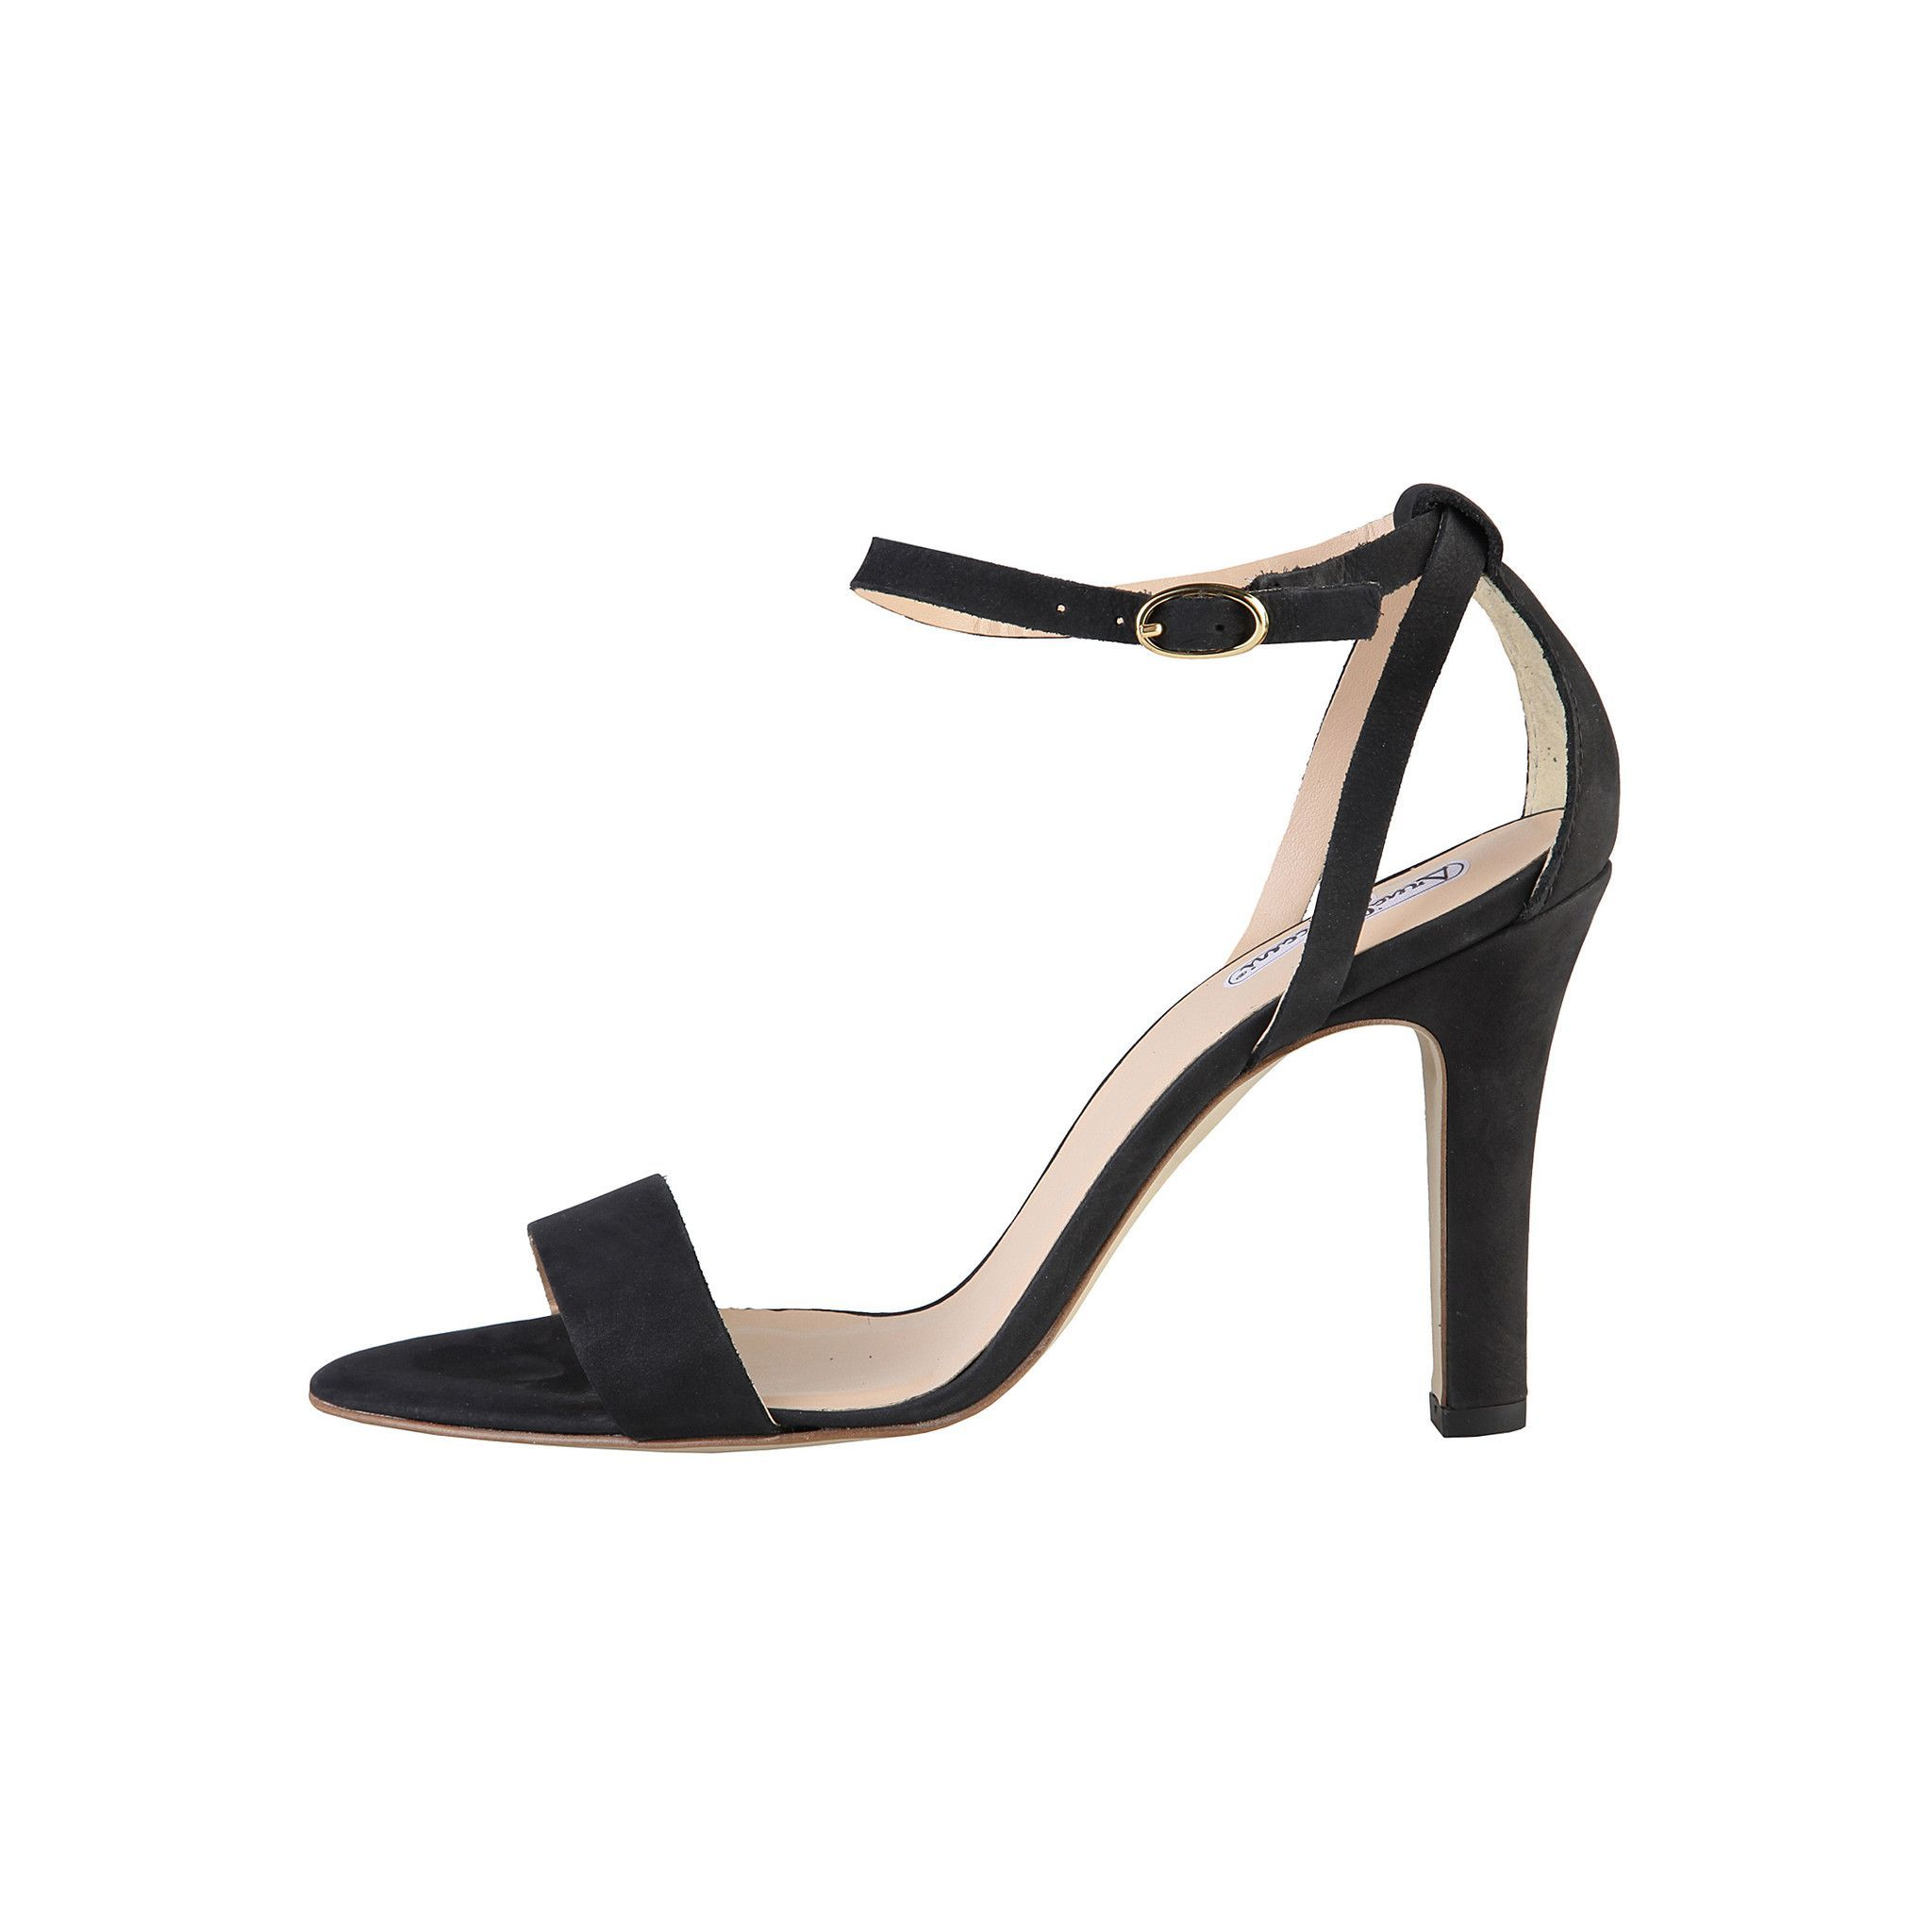 Women shoes   - S/S Collection   - Sandals with adjustable ankle closure   - Upper: GENUINE LEATHER, suede   - Interior: synthetic material   - Sole: rubber   - Heel: 7 cm